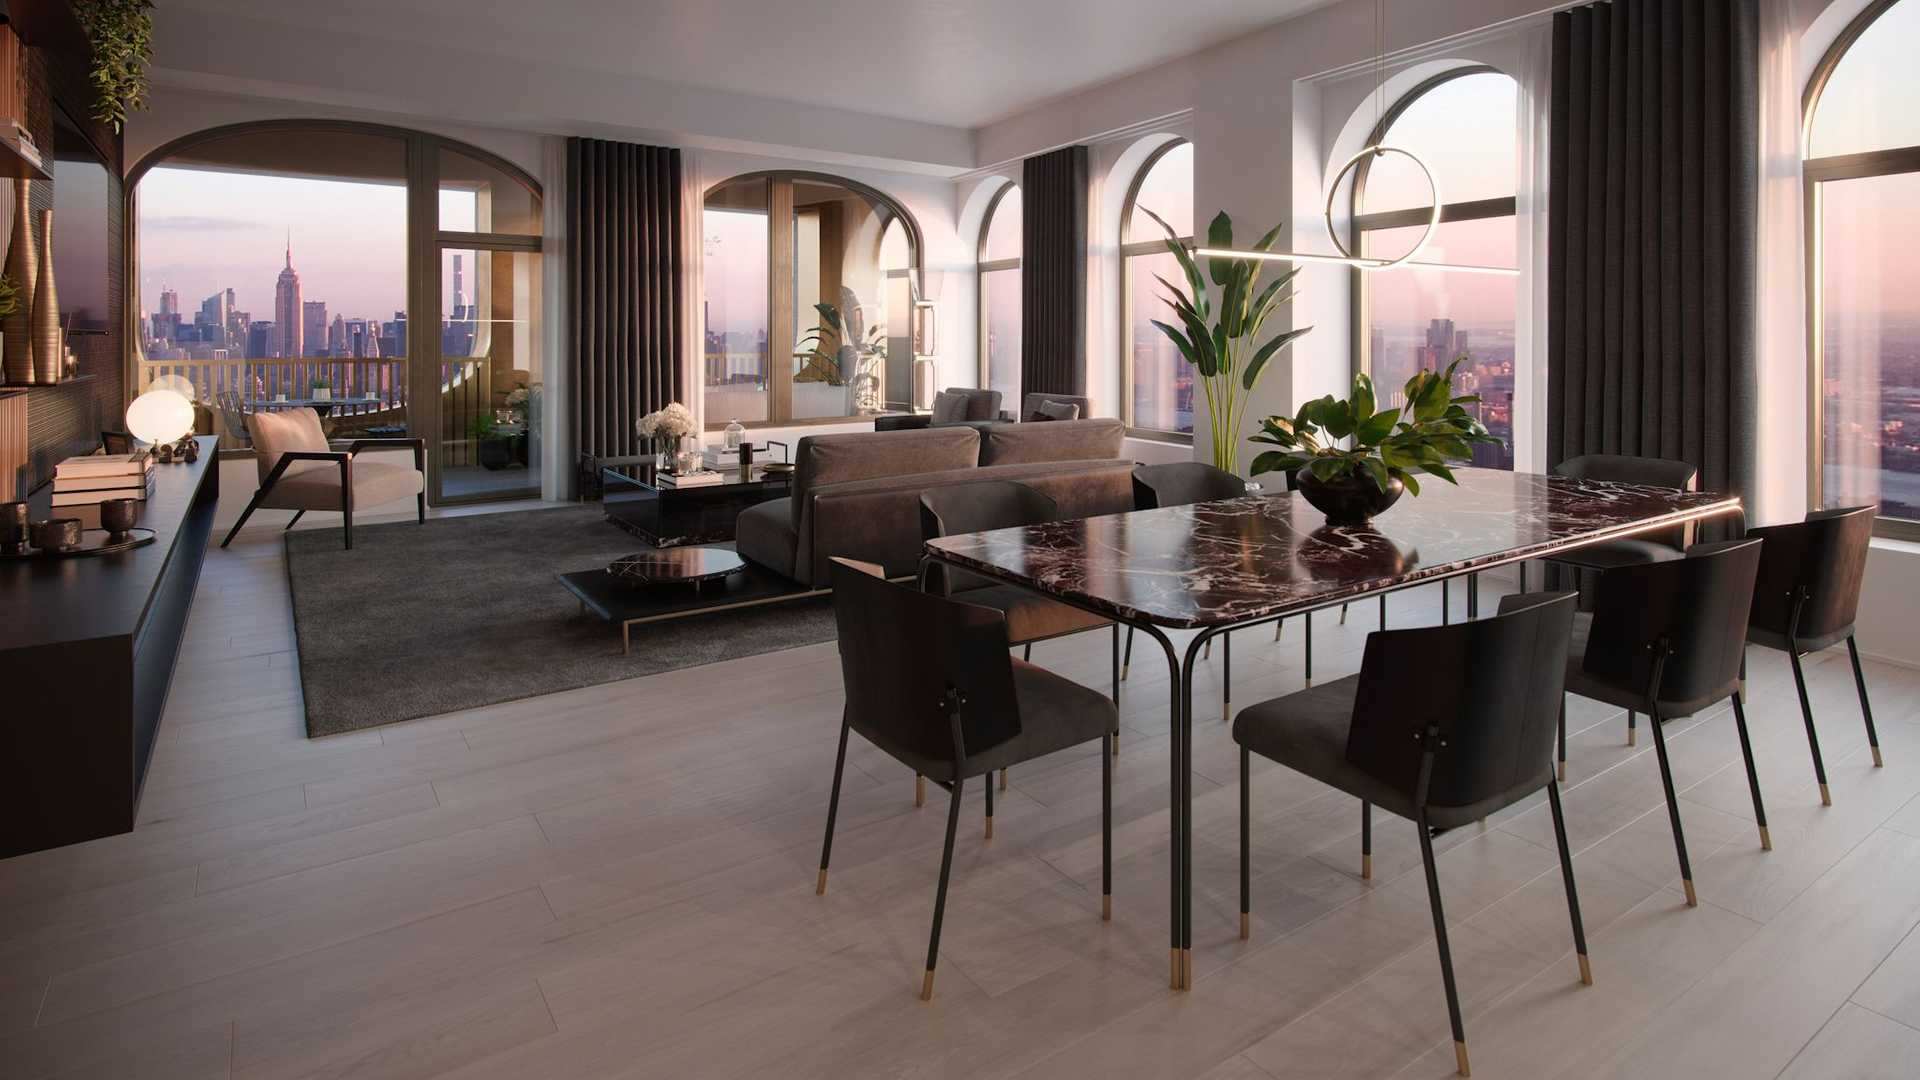 Aston Martin Designs Five Luxury New York City Homes Dbx Included